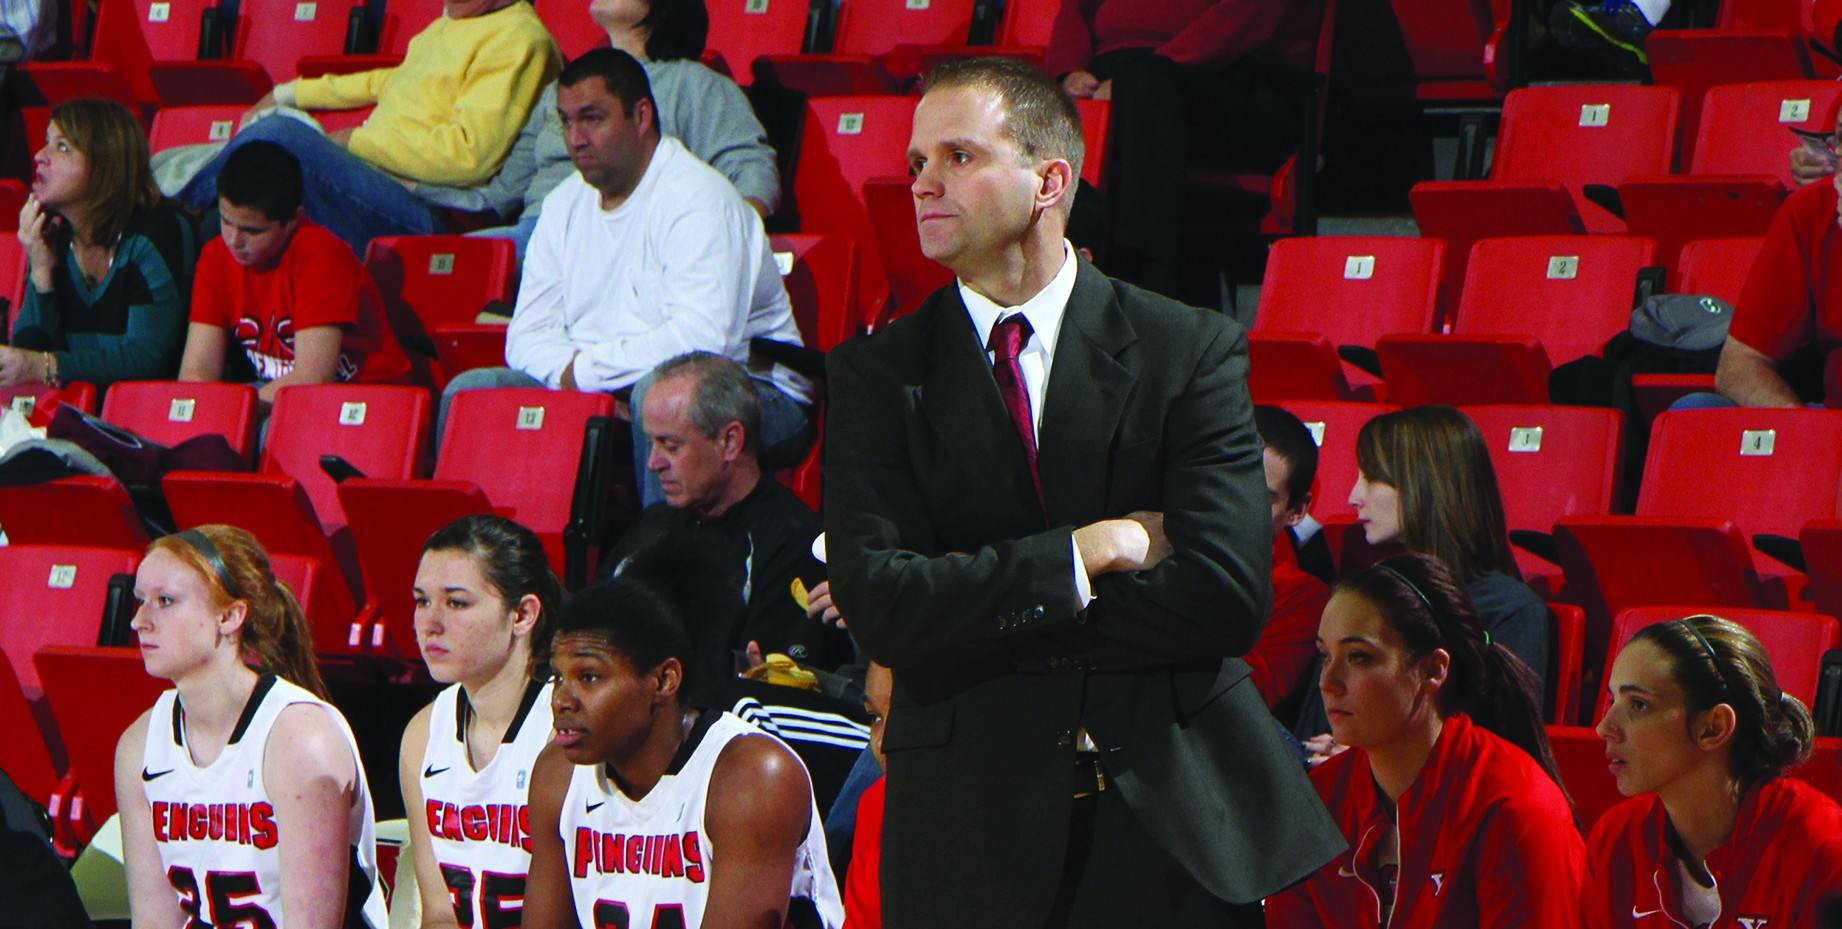 YSU Women's Basketball head coach John Barnes coaches the team on the sidelines mid-game during the first half of the season. Photo courtesy of Ron Stevens.